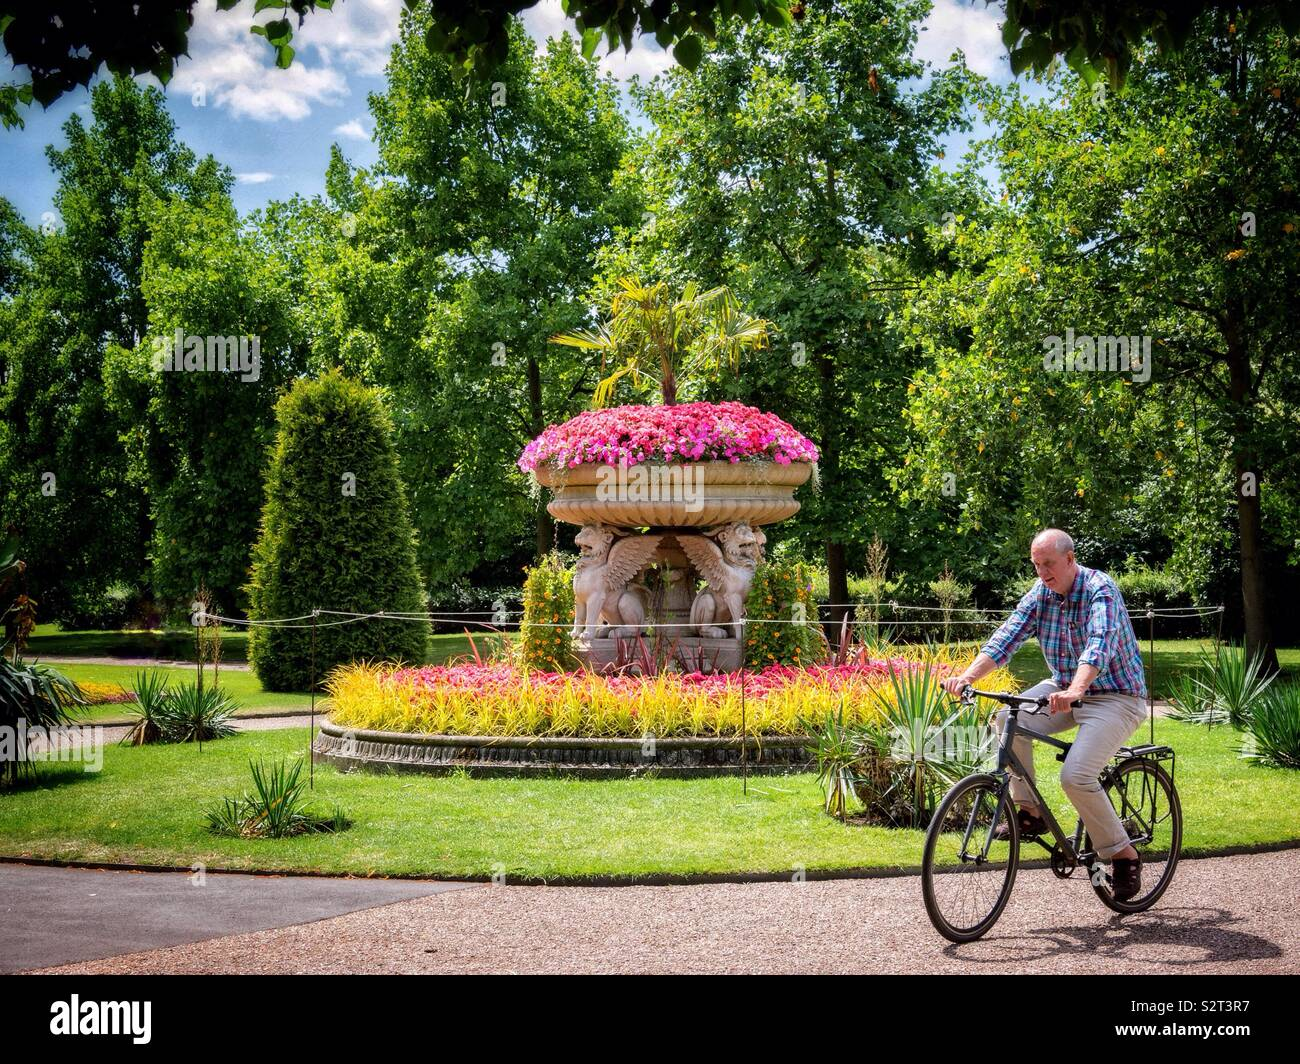 A senior man rides a bicycle through the English Gardens in Regent's Park London on a hot sunny summer day - Stock Image